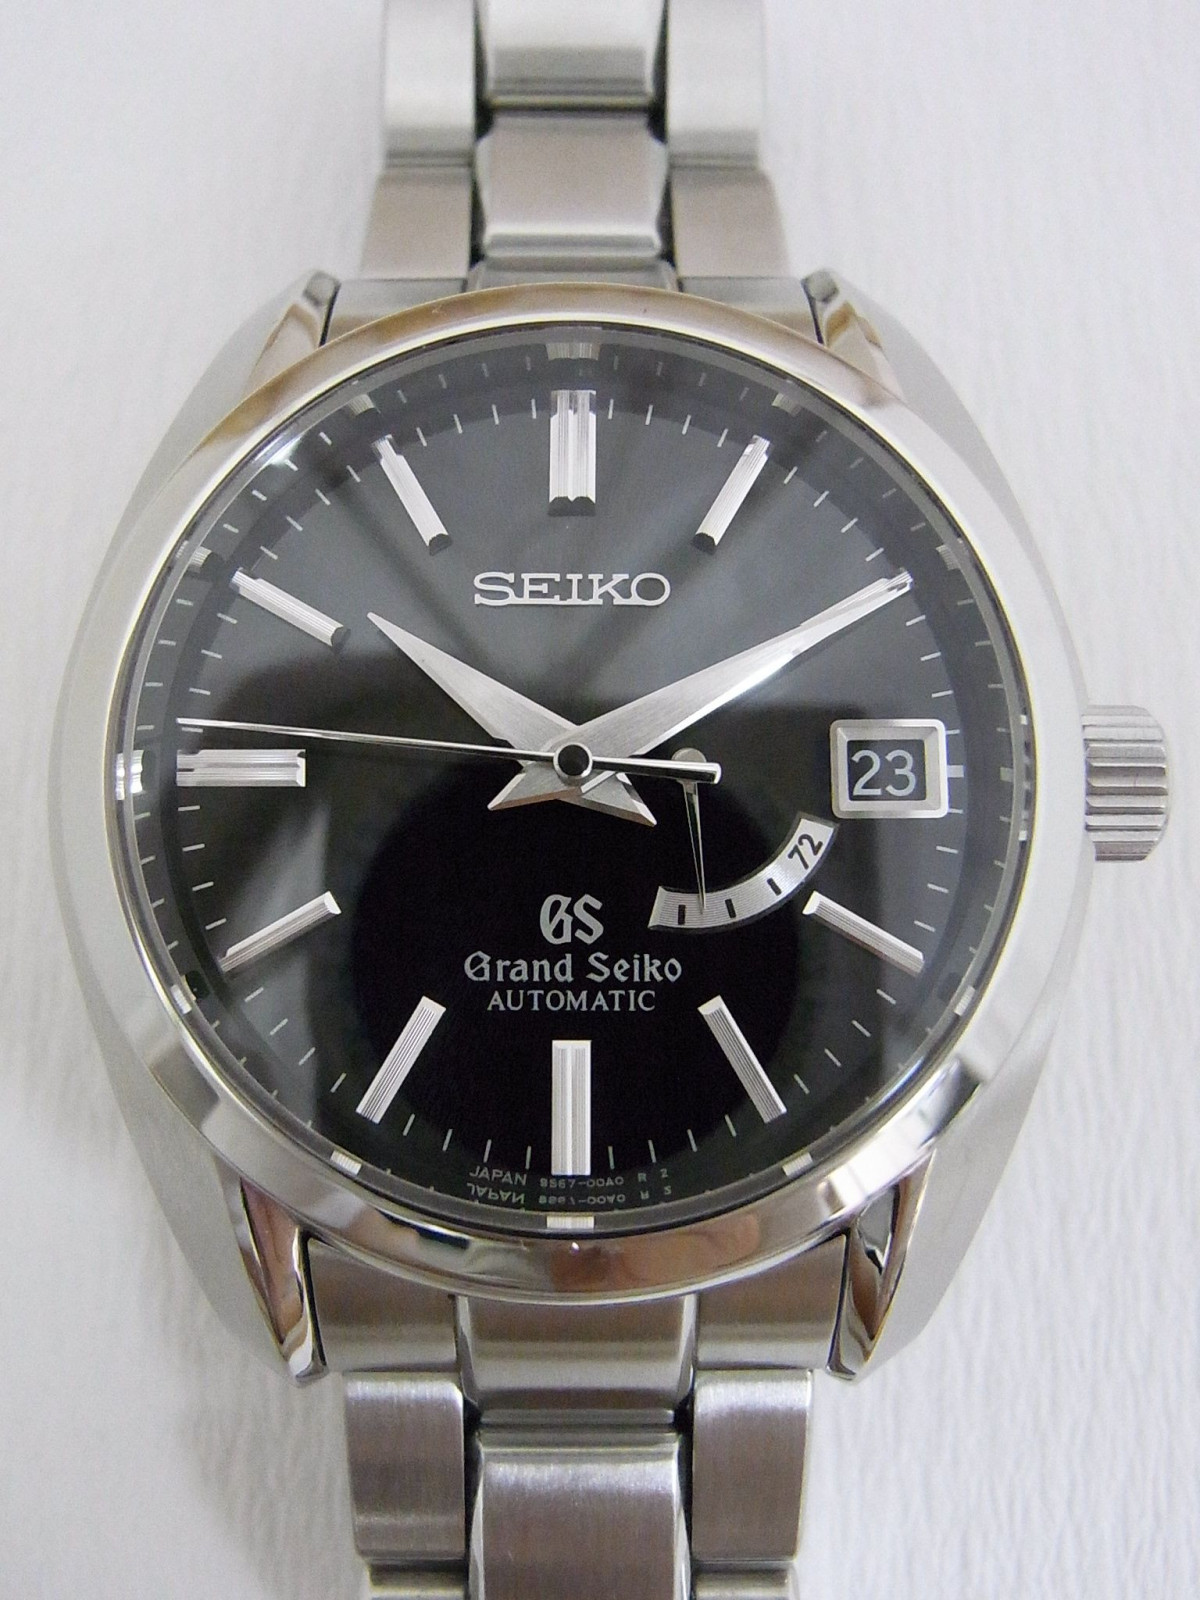 sports shoes 36c9f fb757 Pre-owned Grand Seiko 9S67-00A0 watch ($2,005) for sale ...